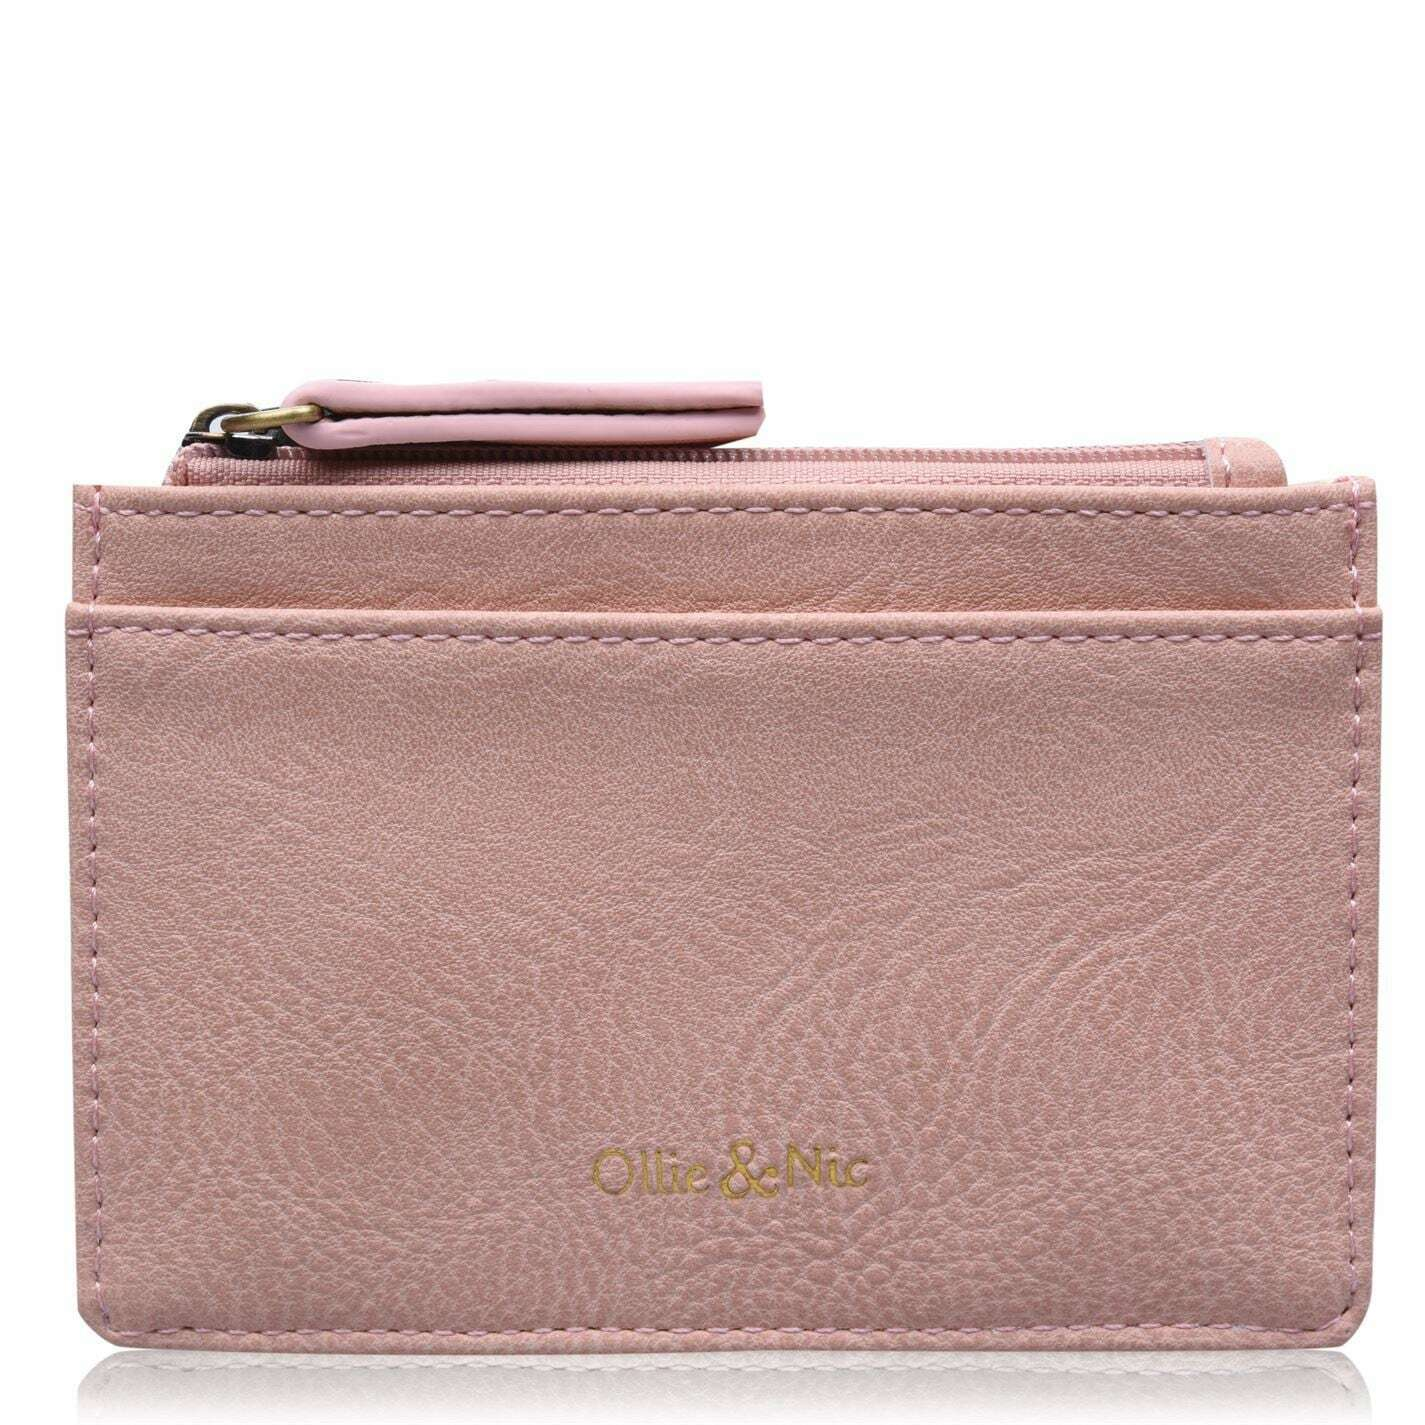 Ollie and Nic Womens FLORA Card Holder